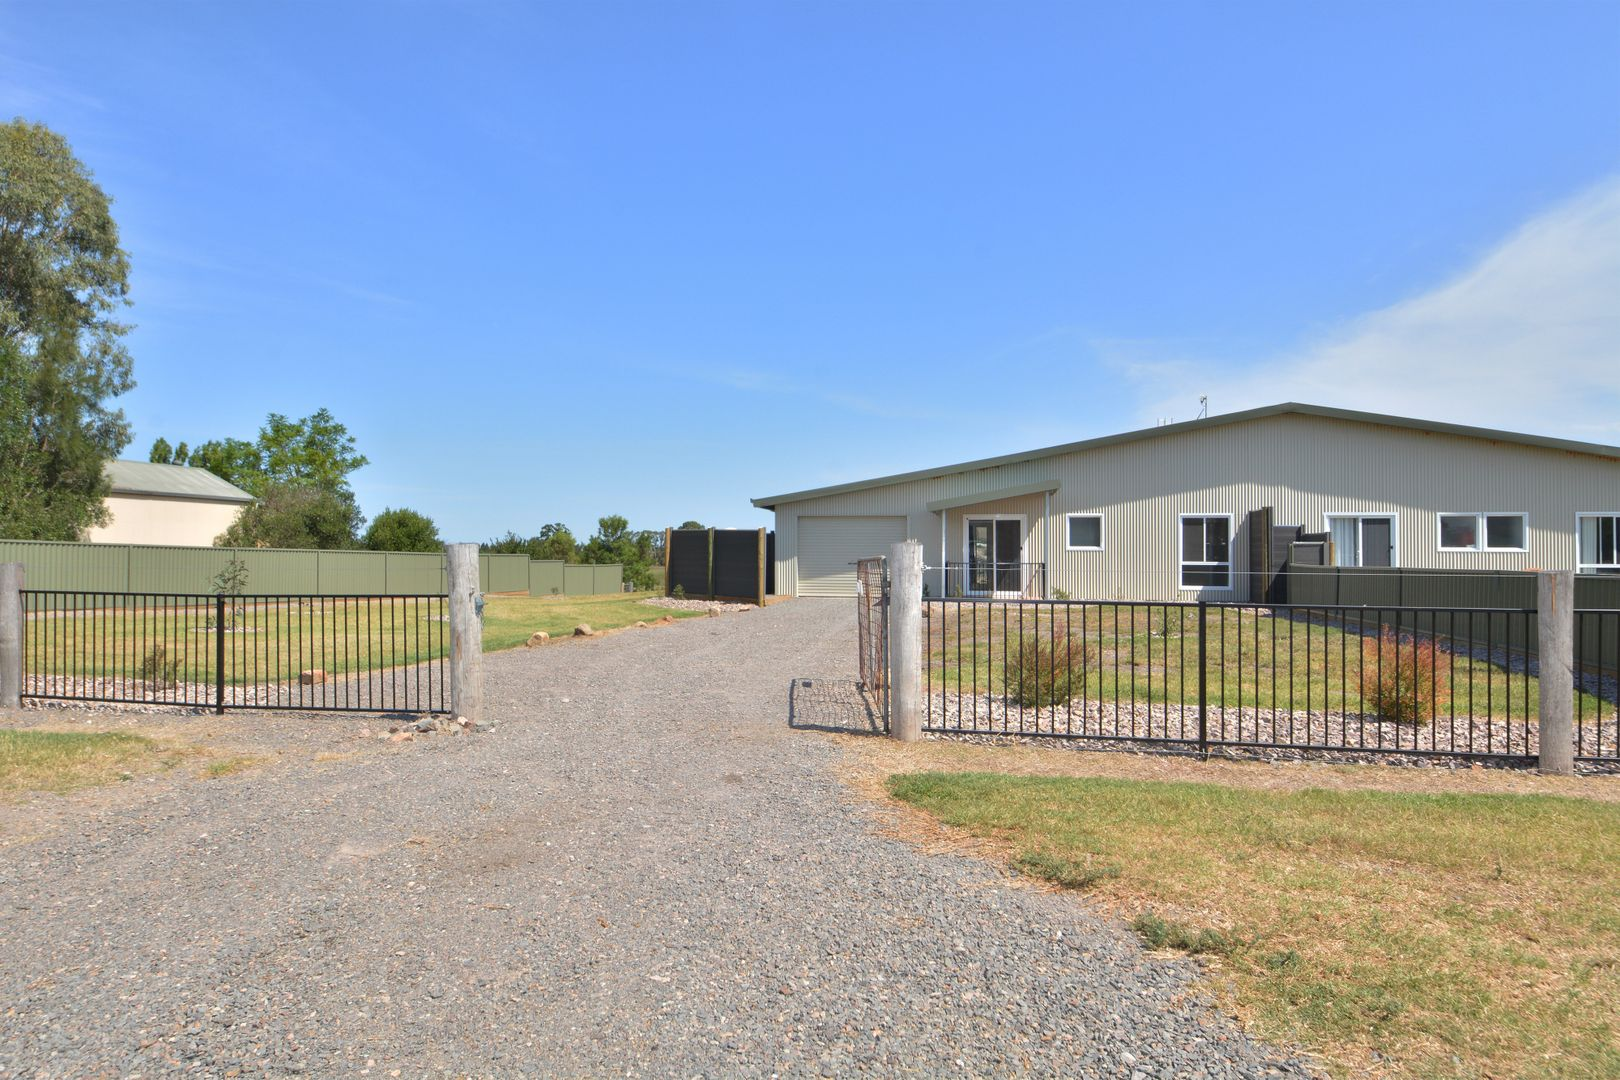 118a Campbells Road, Maitland Vale NSW 2320, Image 0